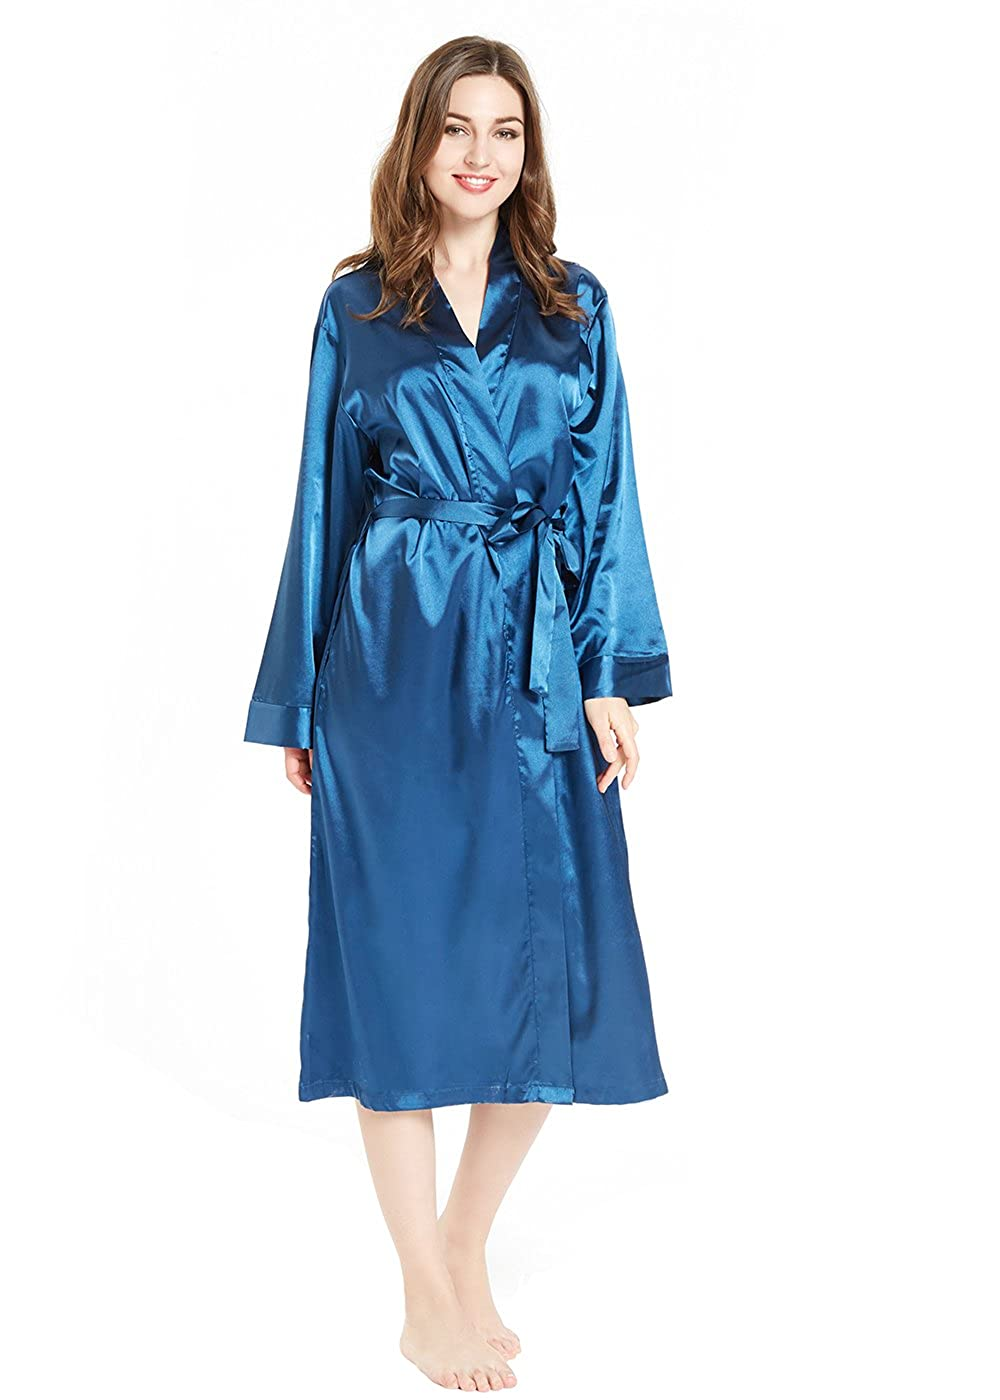 blueea lantisan Silky Satin Robe Women, Long Bathrobe Full Length VNeck Dressing Gown